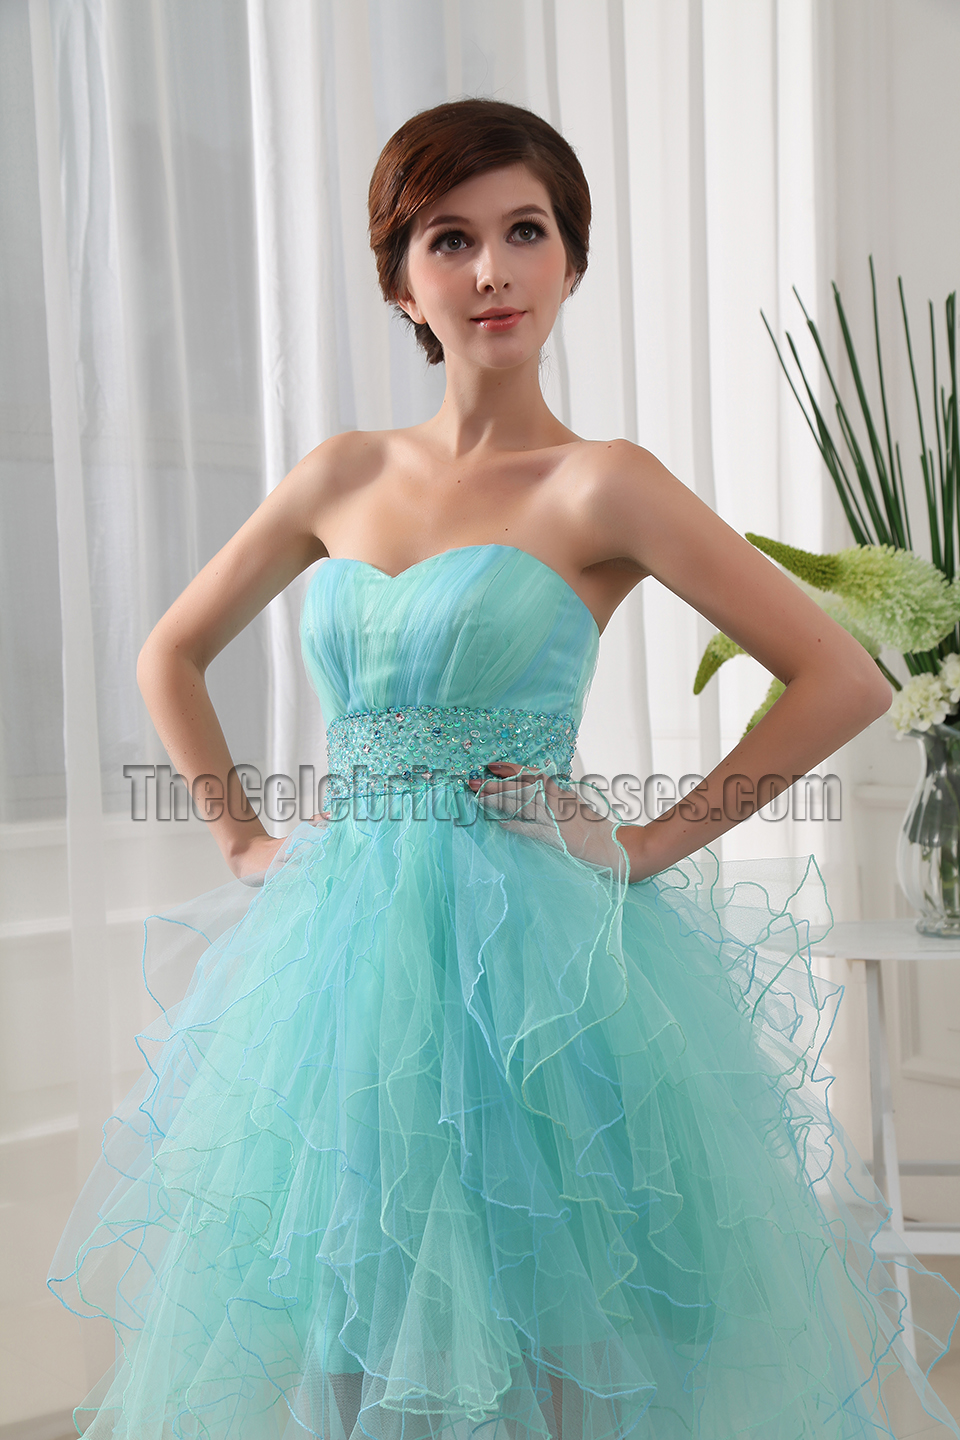 Mint Tulle High Low Strapless Prom Dress Party Dresses ...